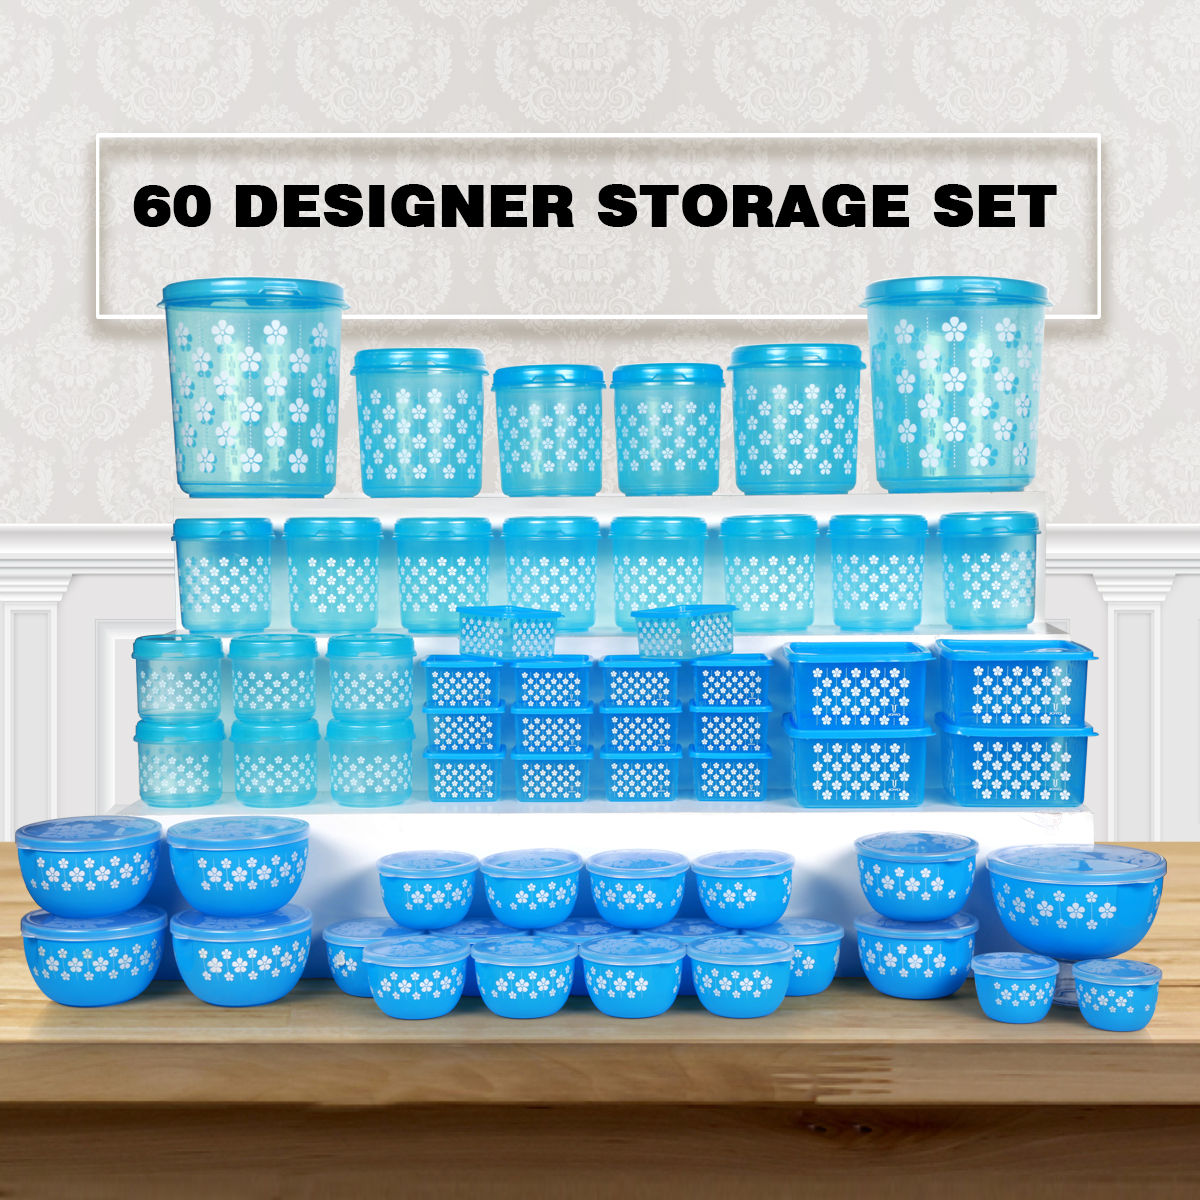 Buy 60 Designer Storage Set Online At Best Price In India On Naaptol Com